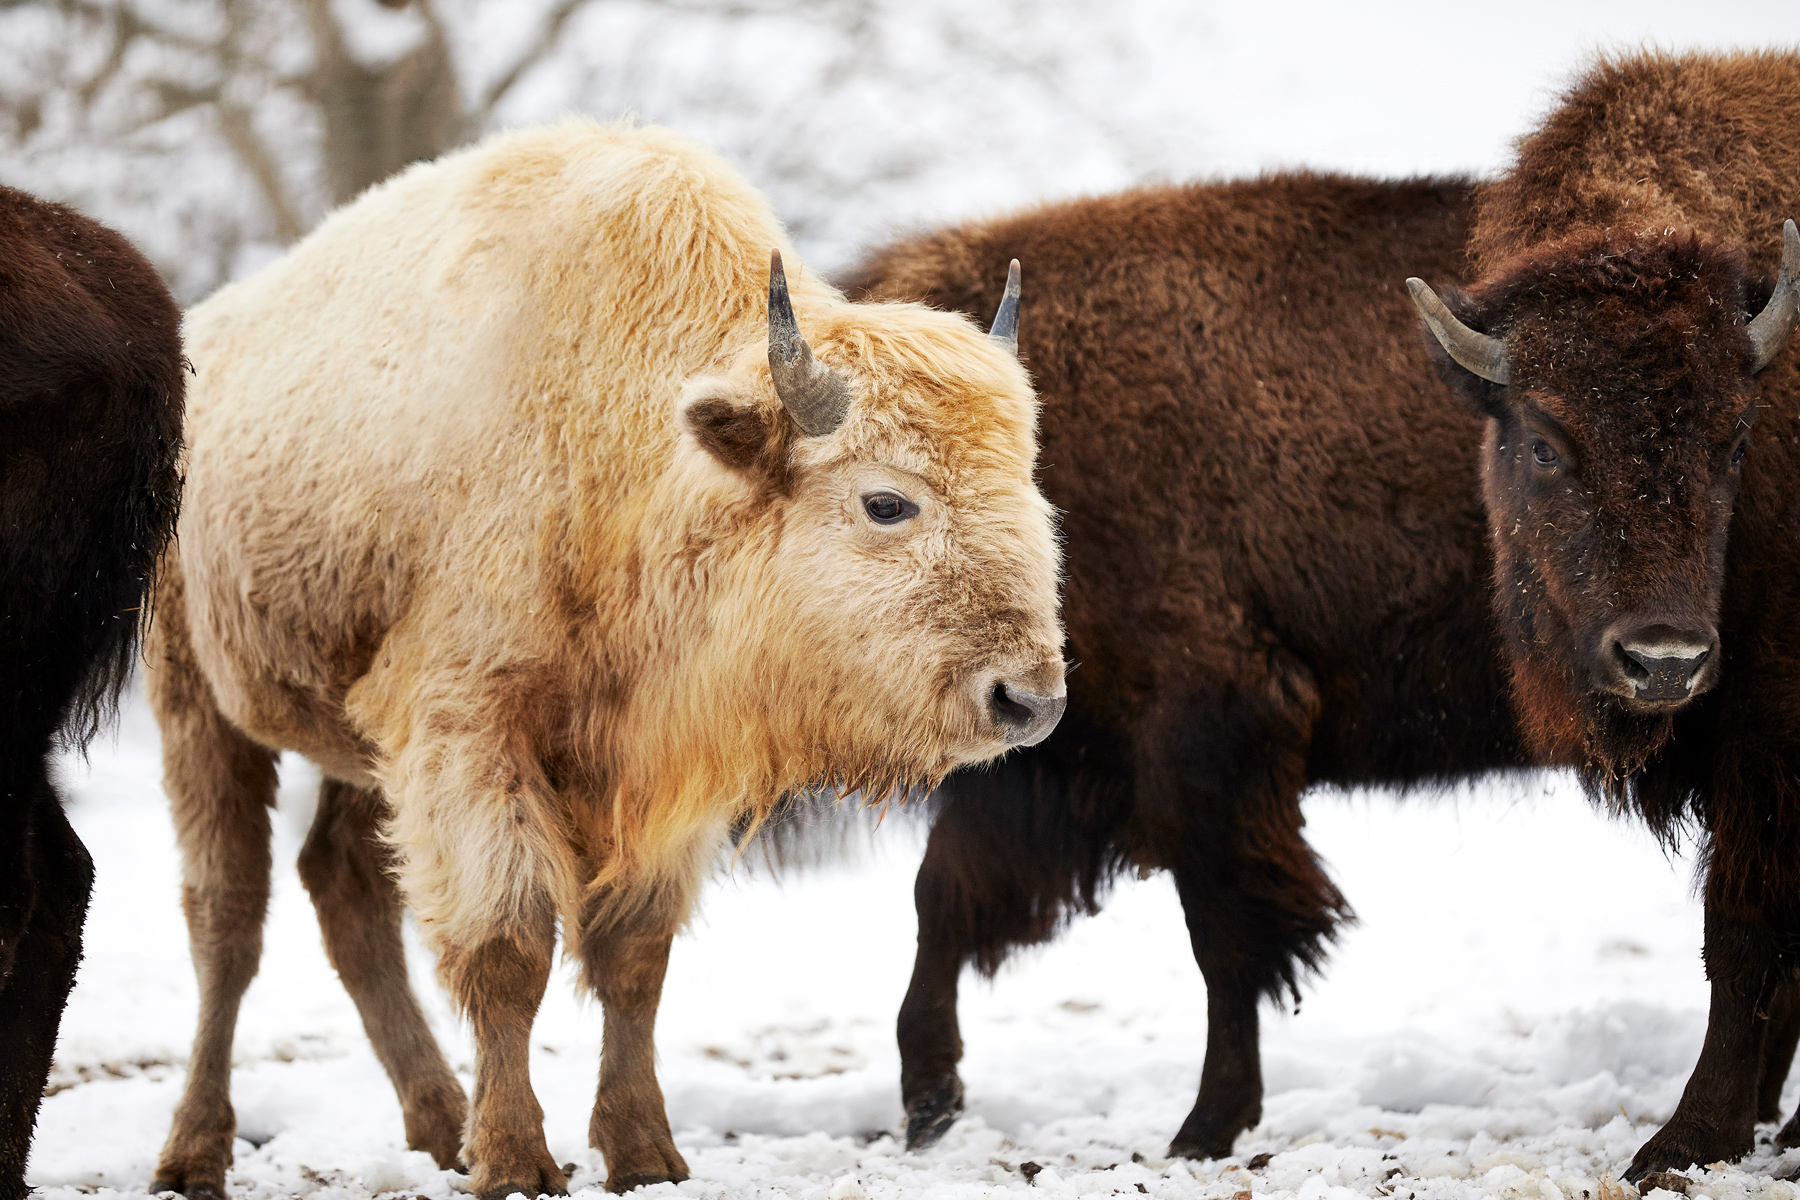 White bison at Dogwood Canyon Nature Park